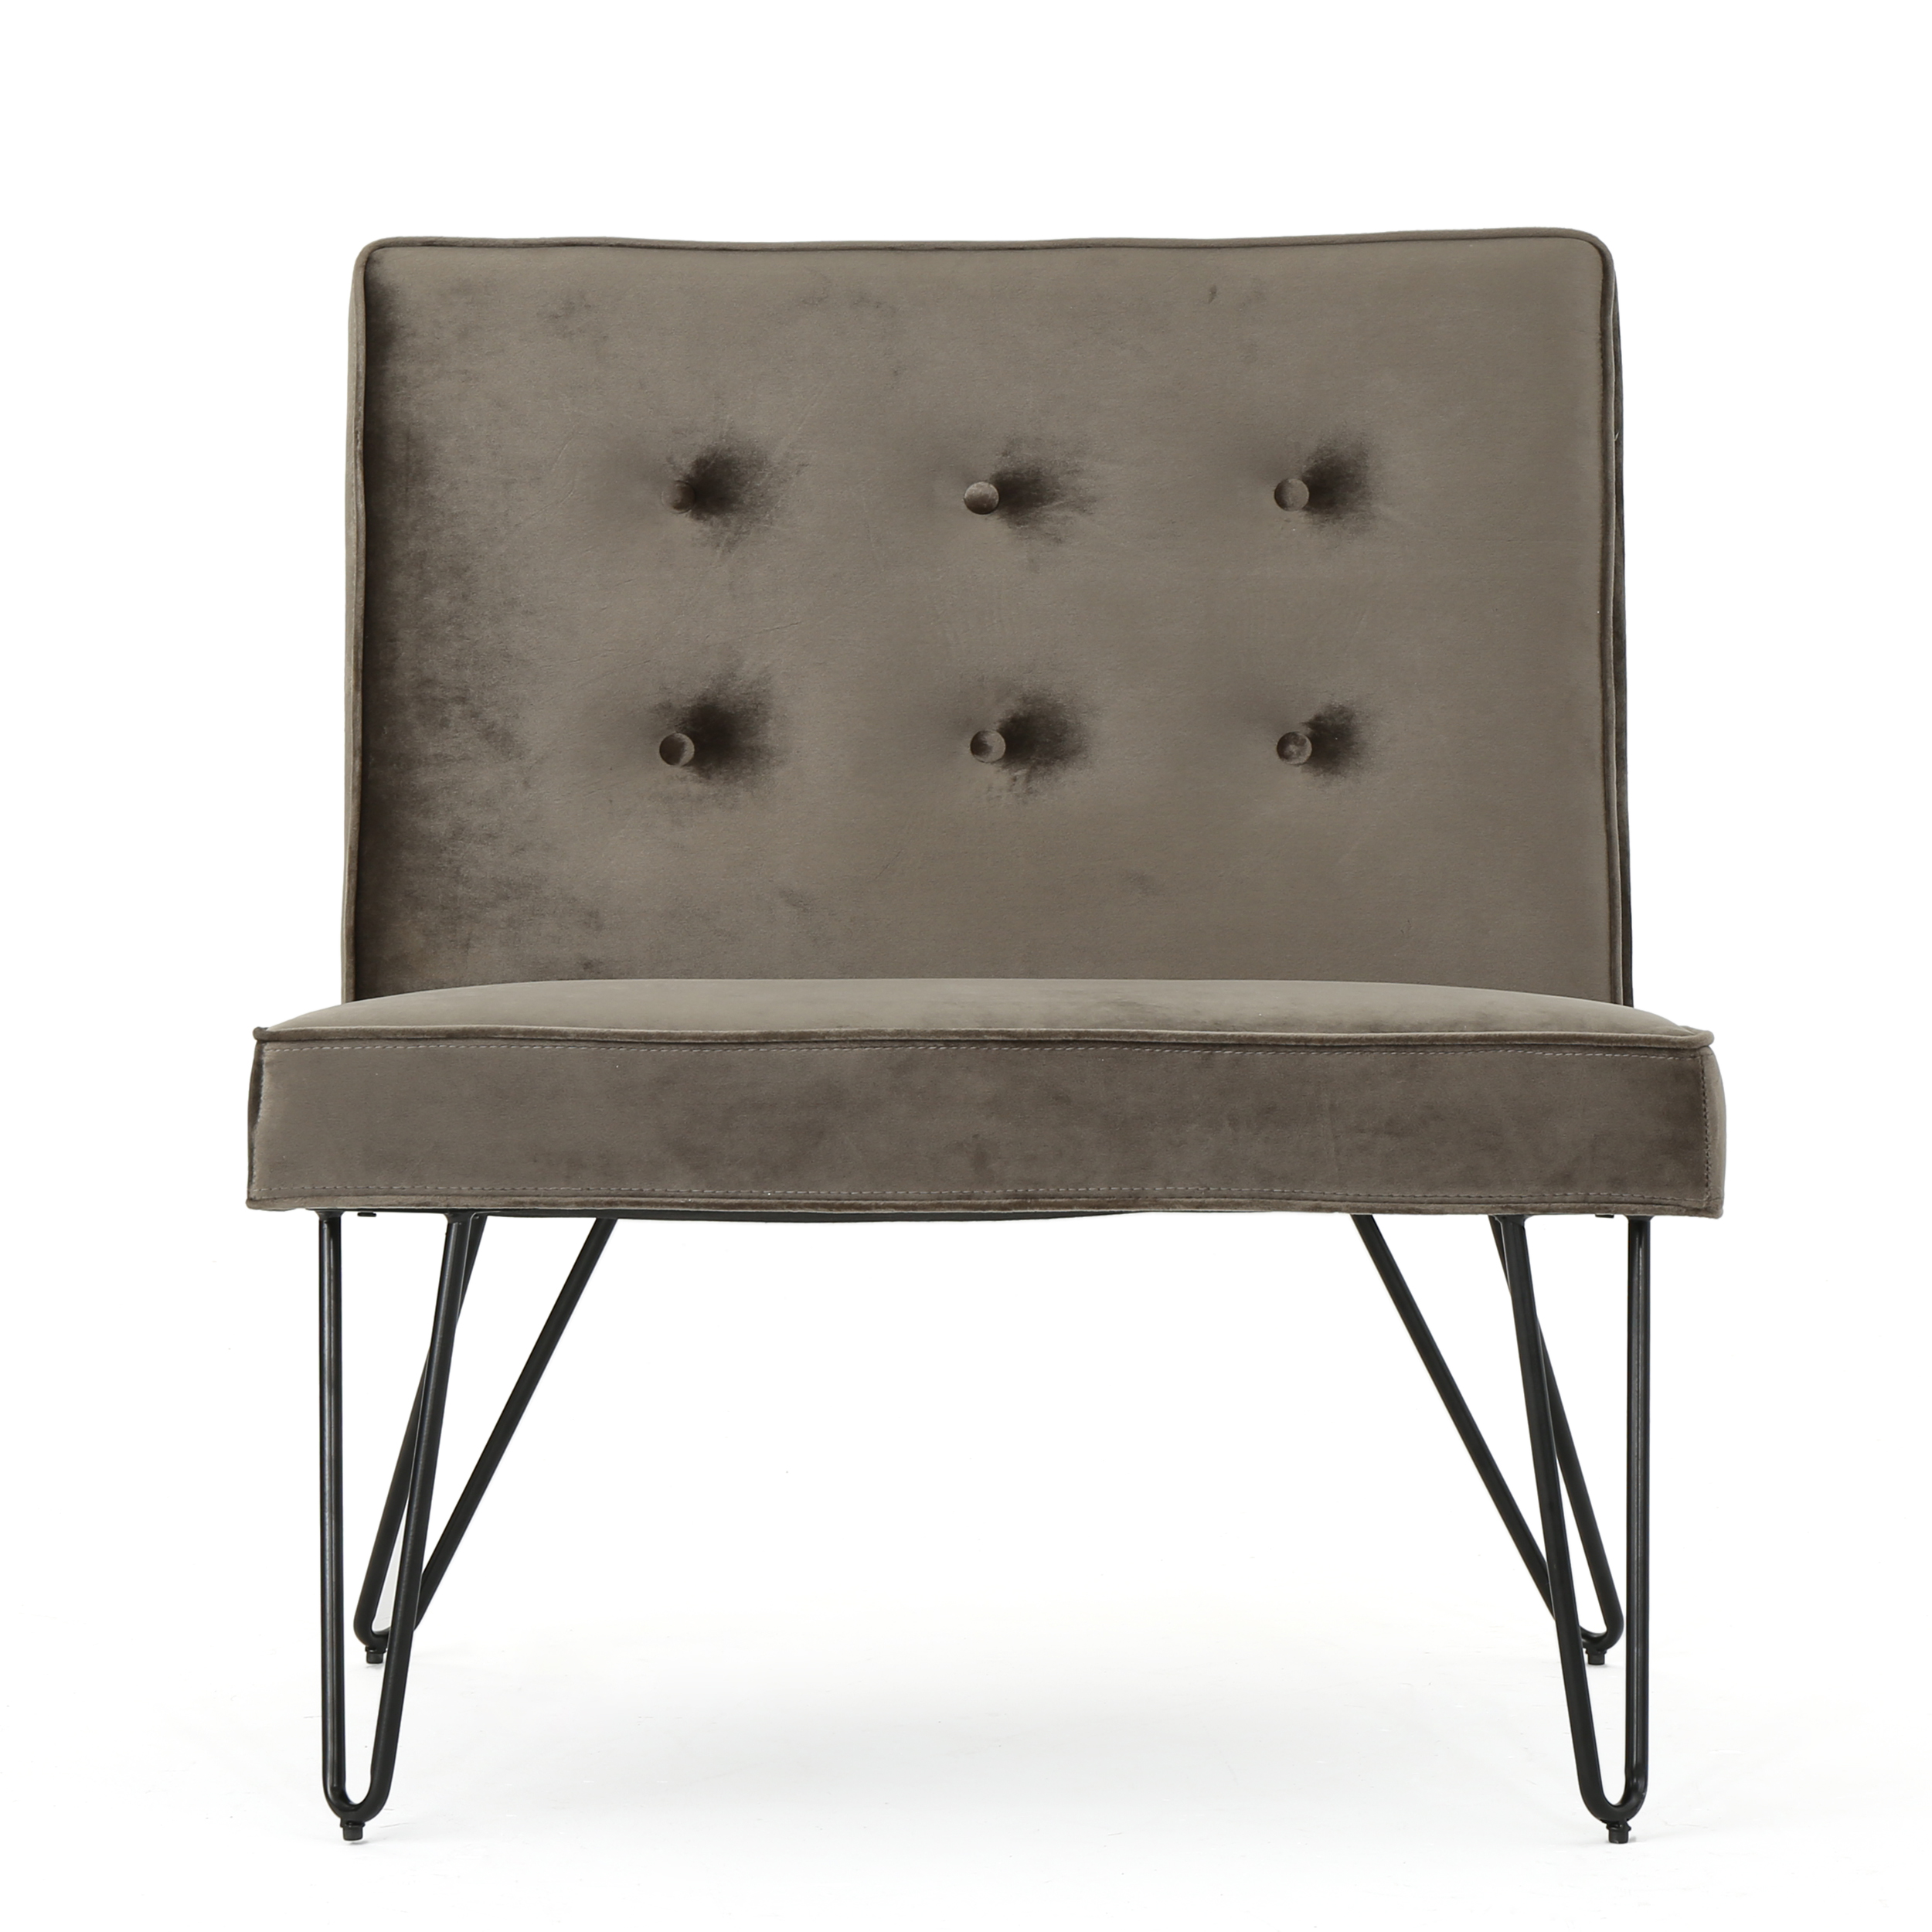 DuSoleil New Velvet Modern Armless Chair, Grey